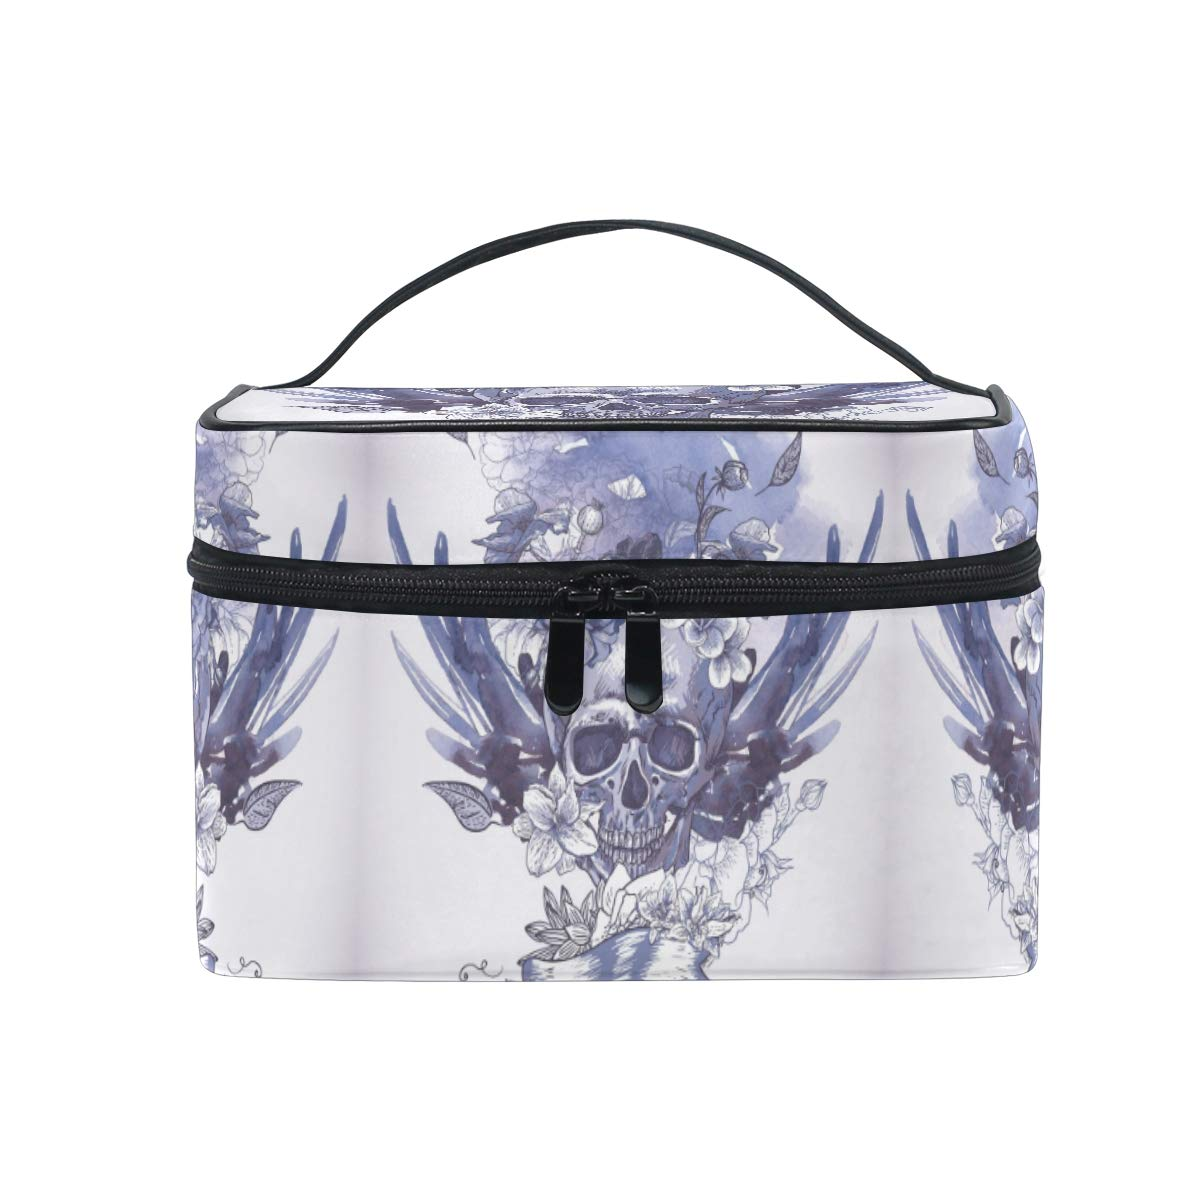 Makeup Bag Purple Skull Wing Flower Travel Cosmetic Bags Organizer Train Case Toiletry Make Up Pouch